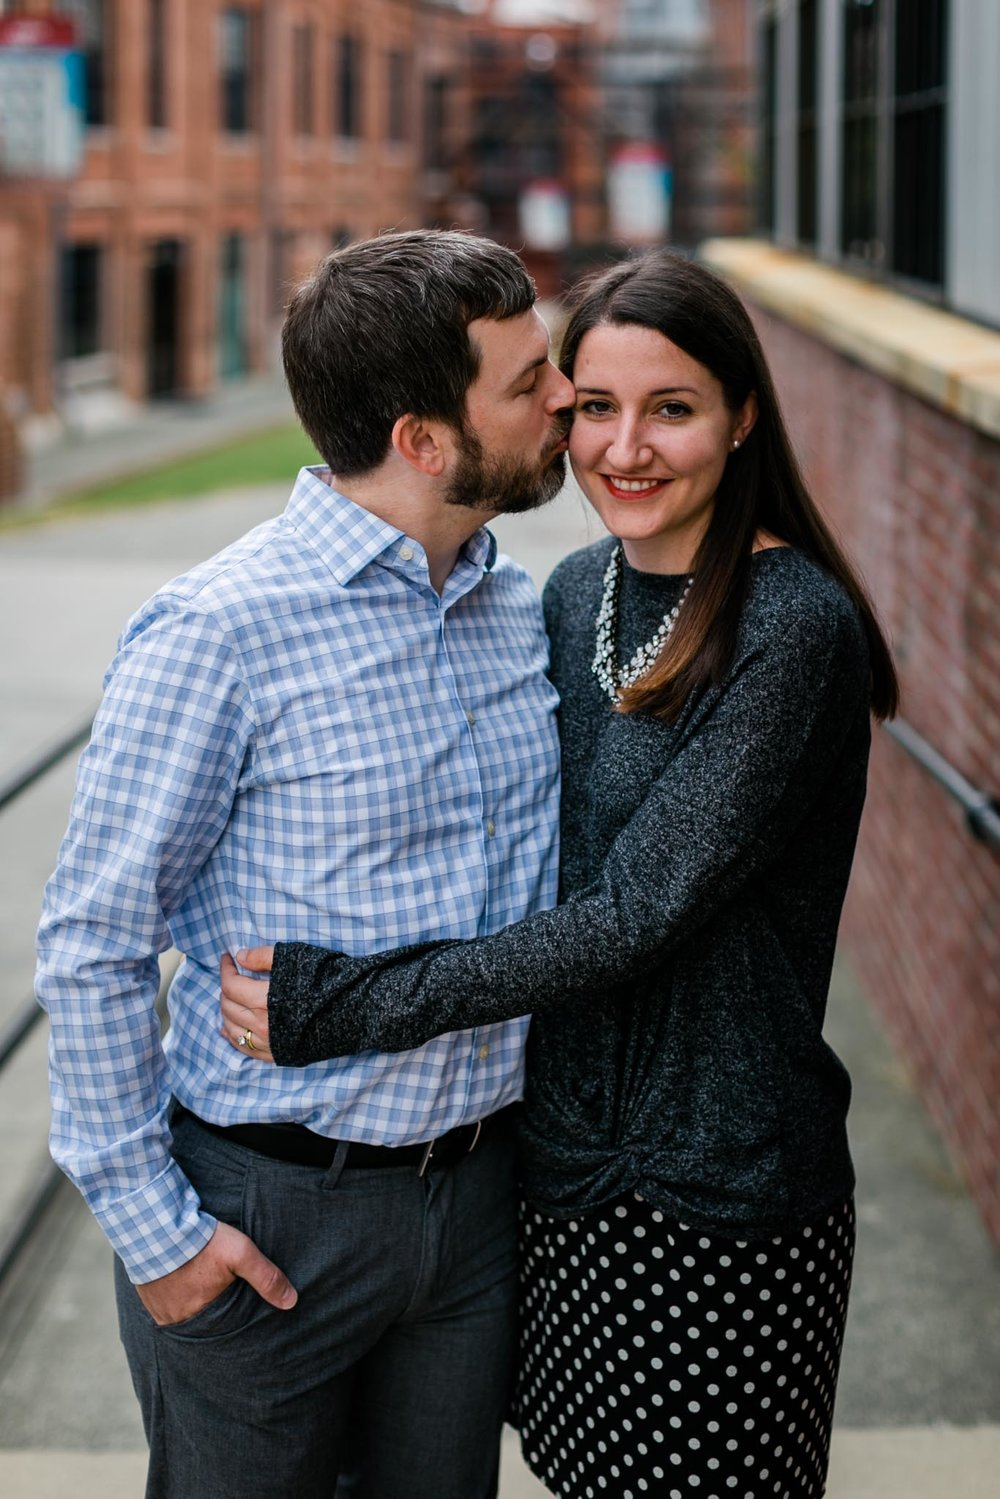 Husband kissing wife on cheek in Downtown Durham | Durham Photographer | By G. Lin Photography